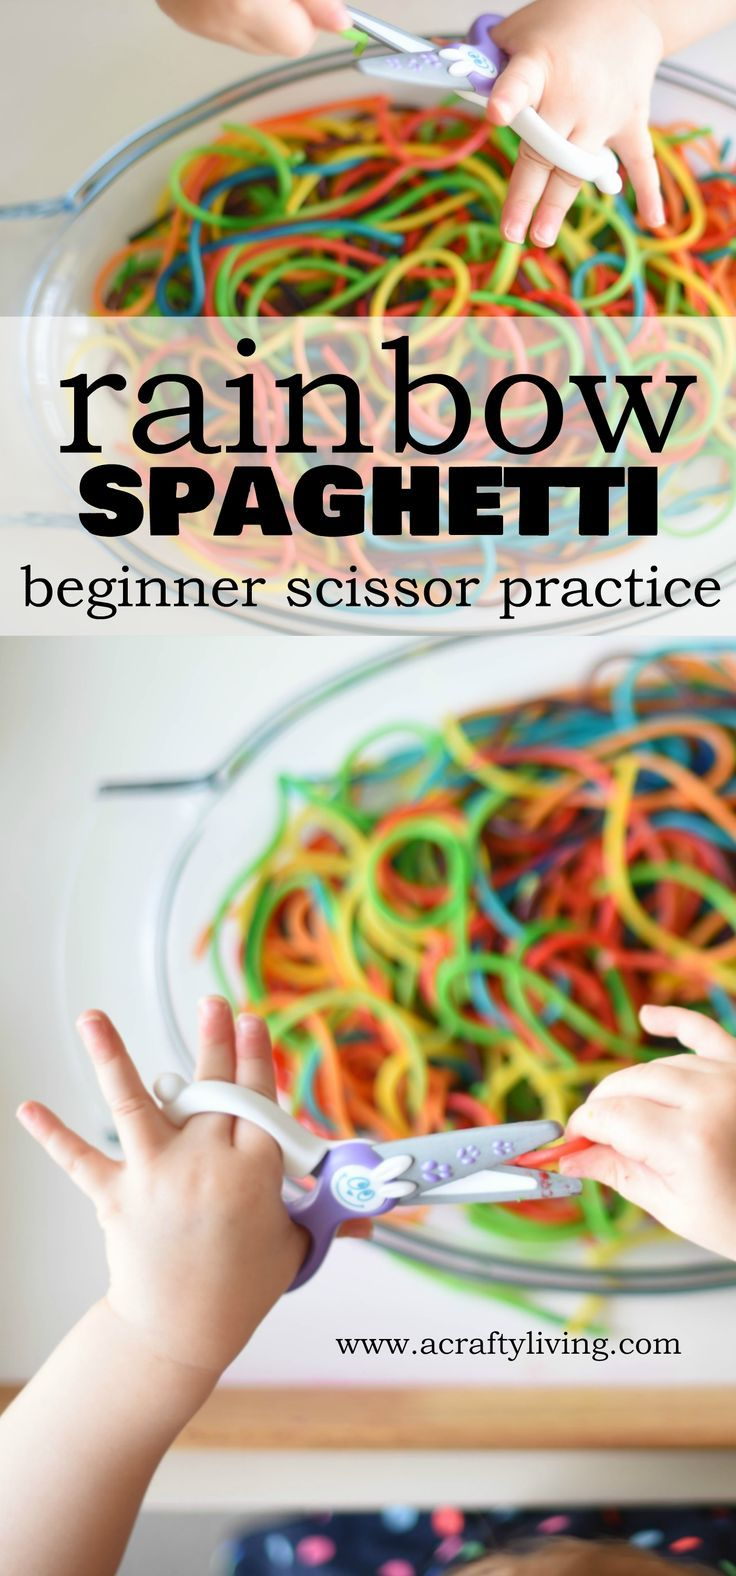 Beginner Scissor Activity with Rainbow Spaghetti for Toddlers & Preschoolers! www.acraftyliving.com